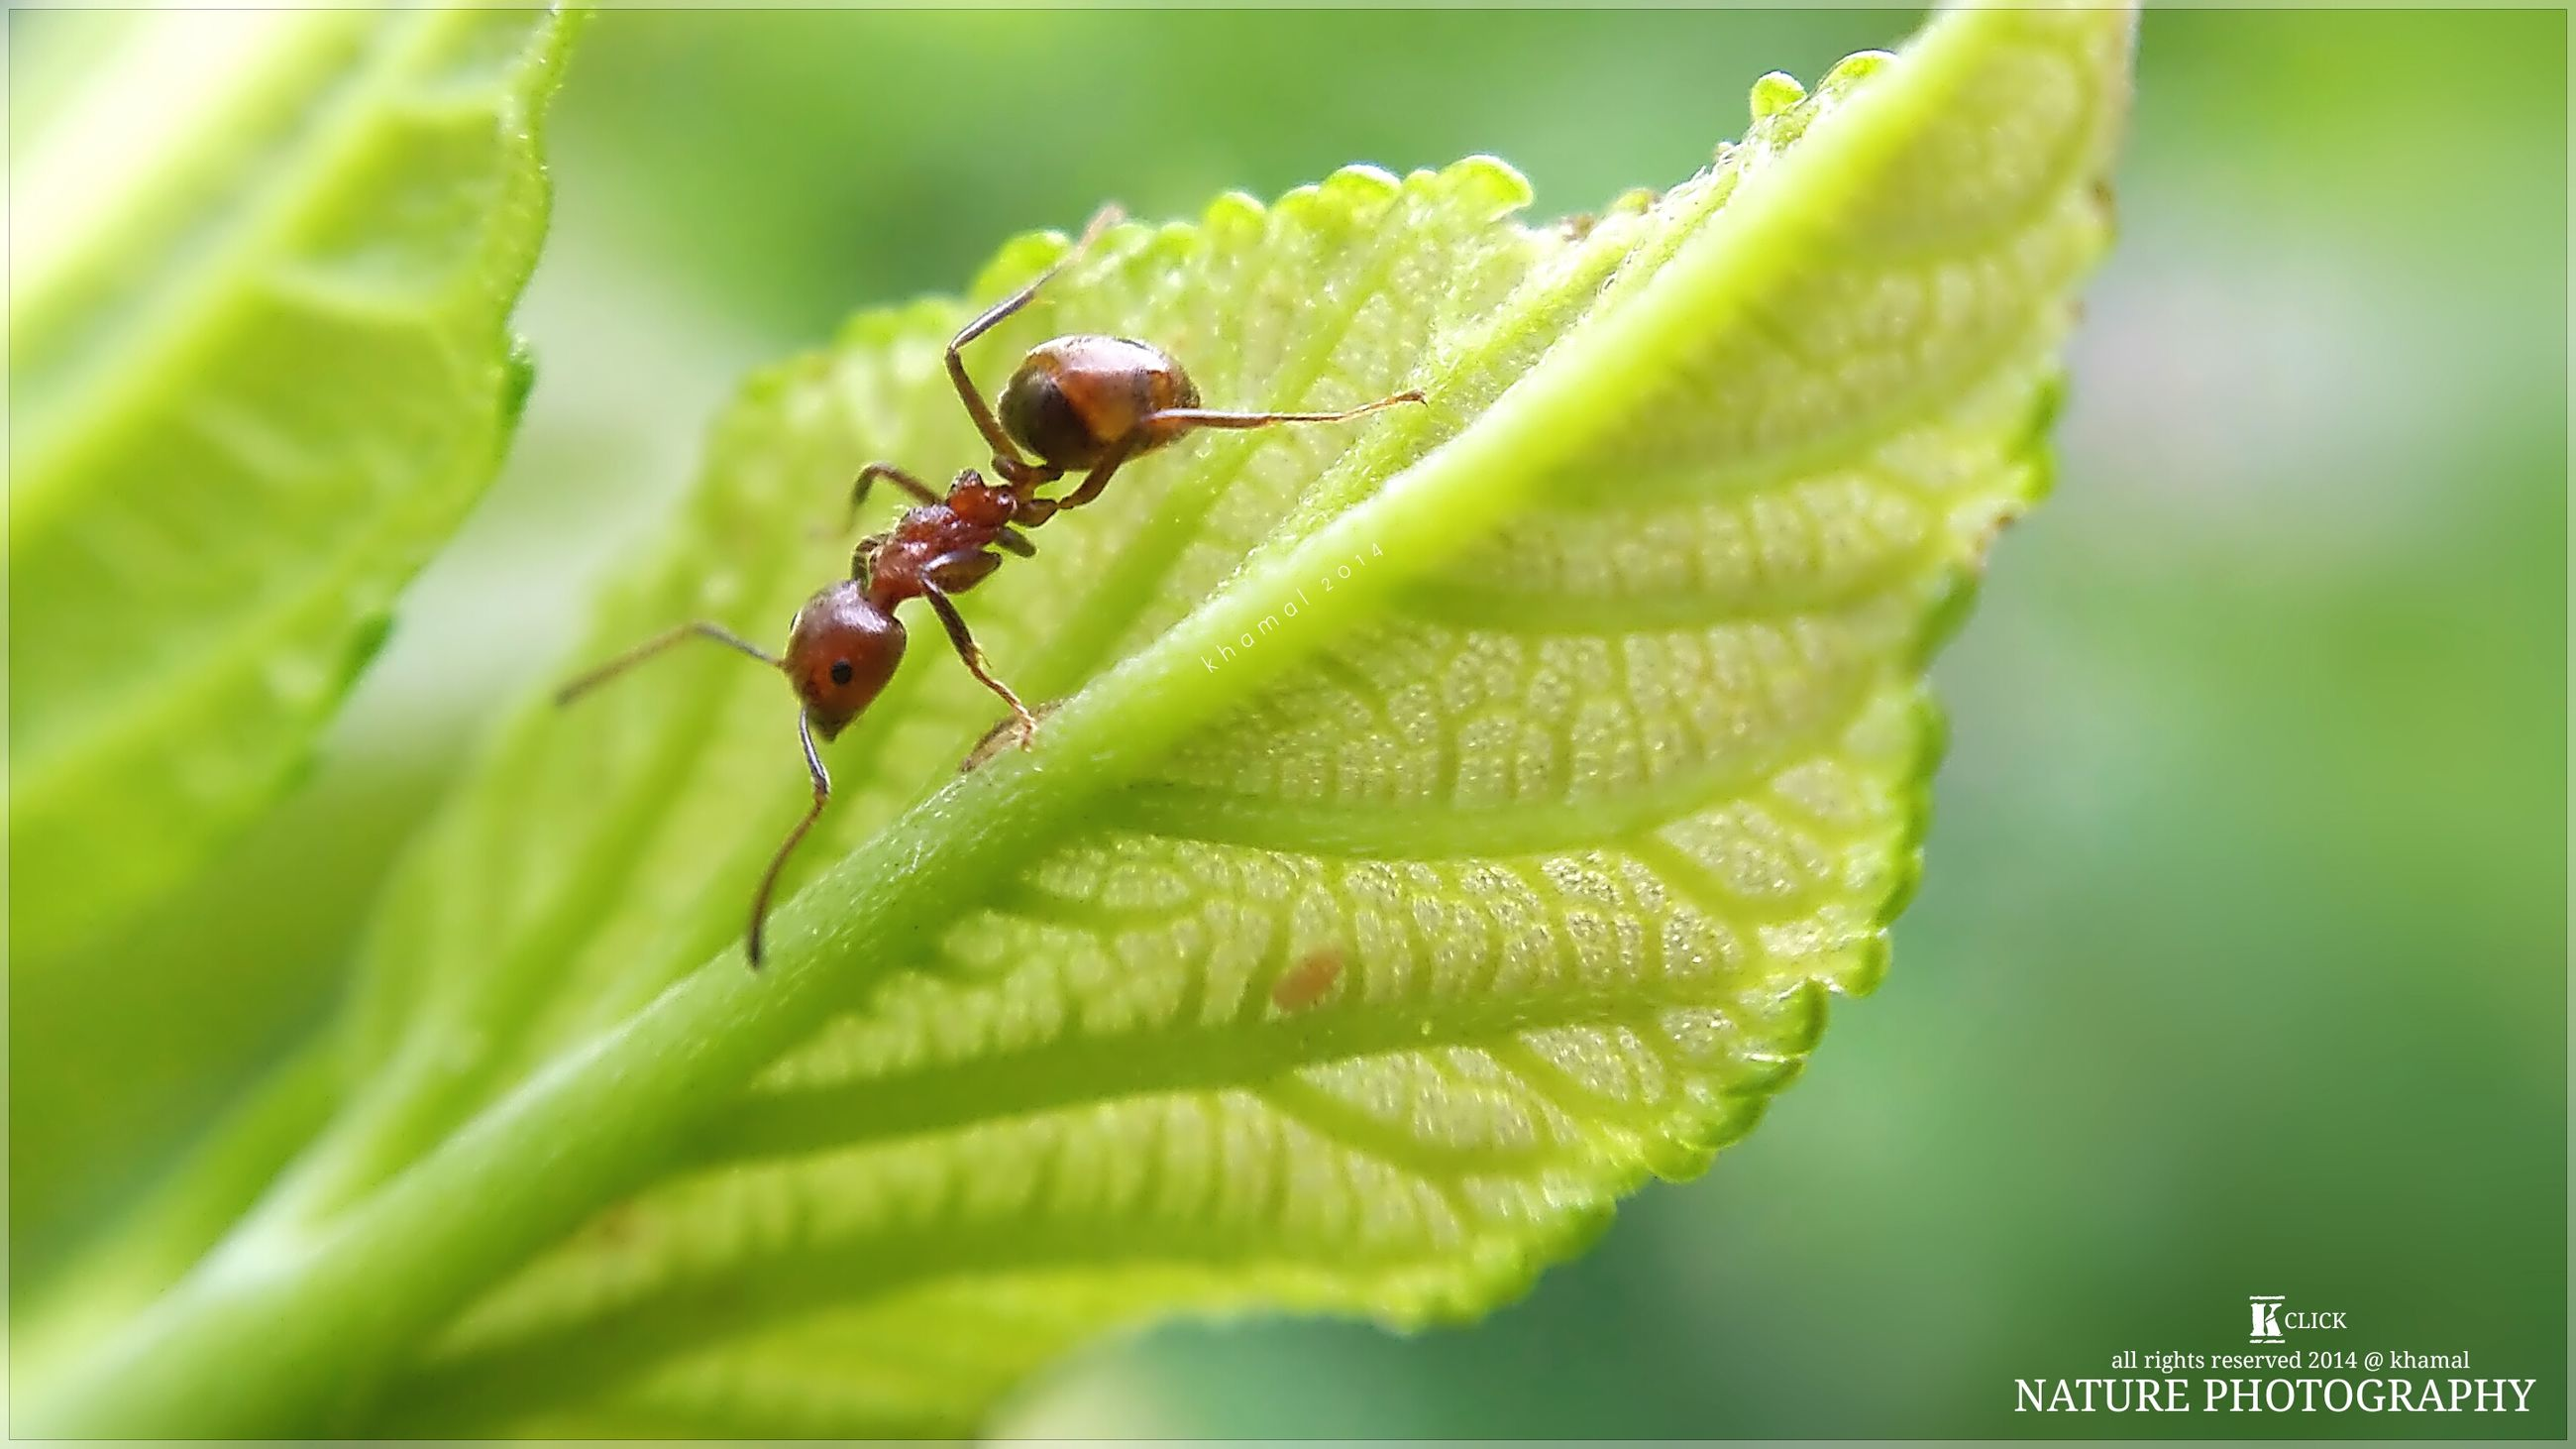 green color, insect, animal themes, animals in the wild, leaf, one animal, close-up, wildlife, focus on foreground, plant, selective focus, nature, growth, day, green, outdoors, no people, dragonfly, stem, beauty in nature